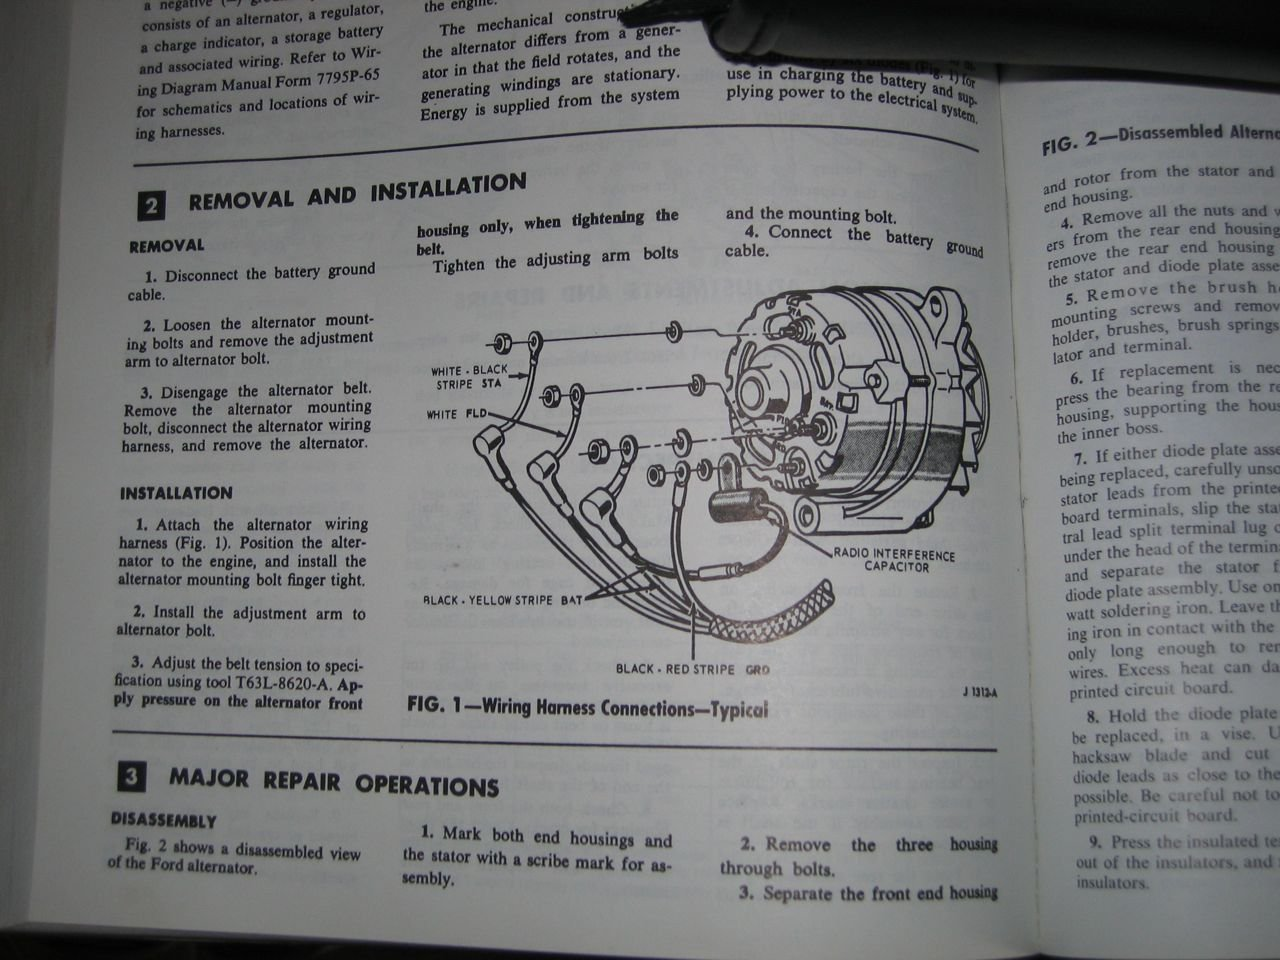 93328d1268767403 1966 mustang alternator wiring img_0749 1966 mustang alternator wiring ford mustang forum 1966 mustang alternator wiring diagram at mifinder.co